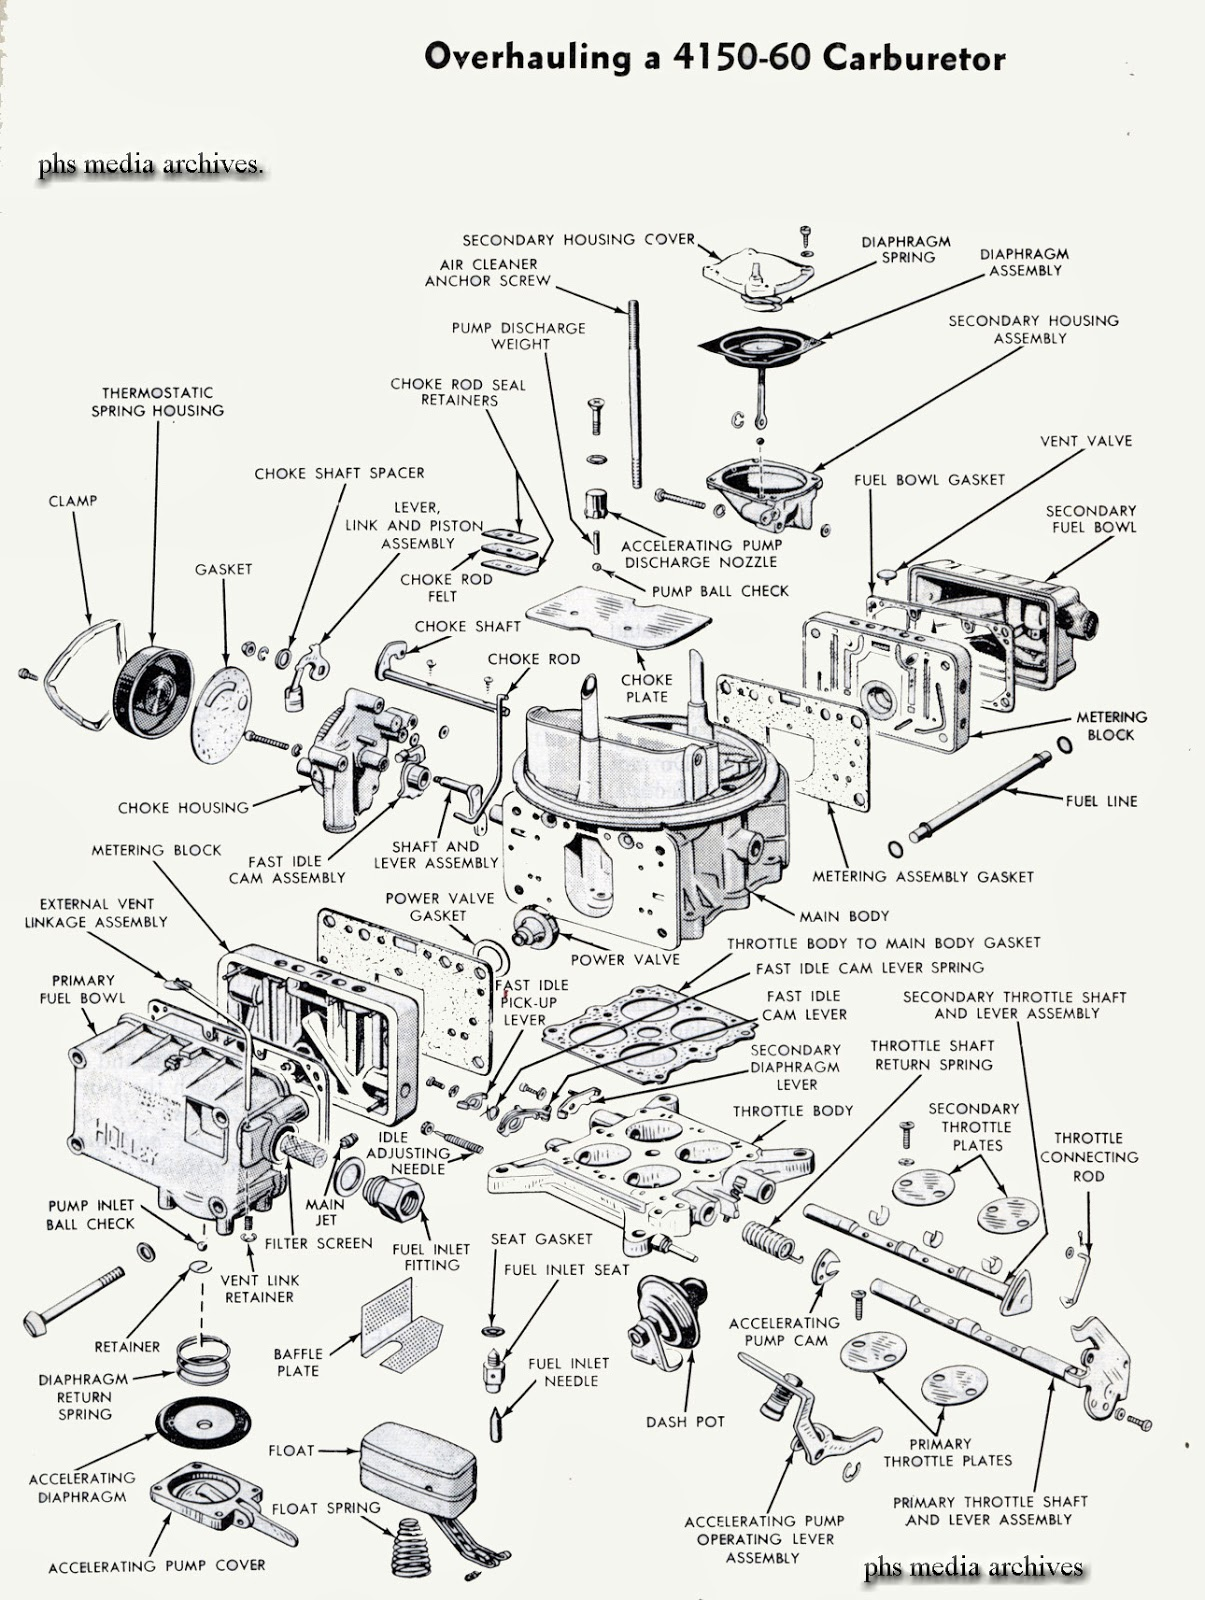 holley carburetor diagram  holley  free engine image for